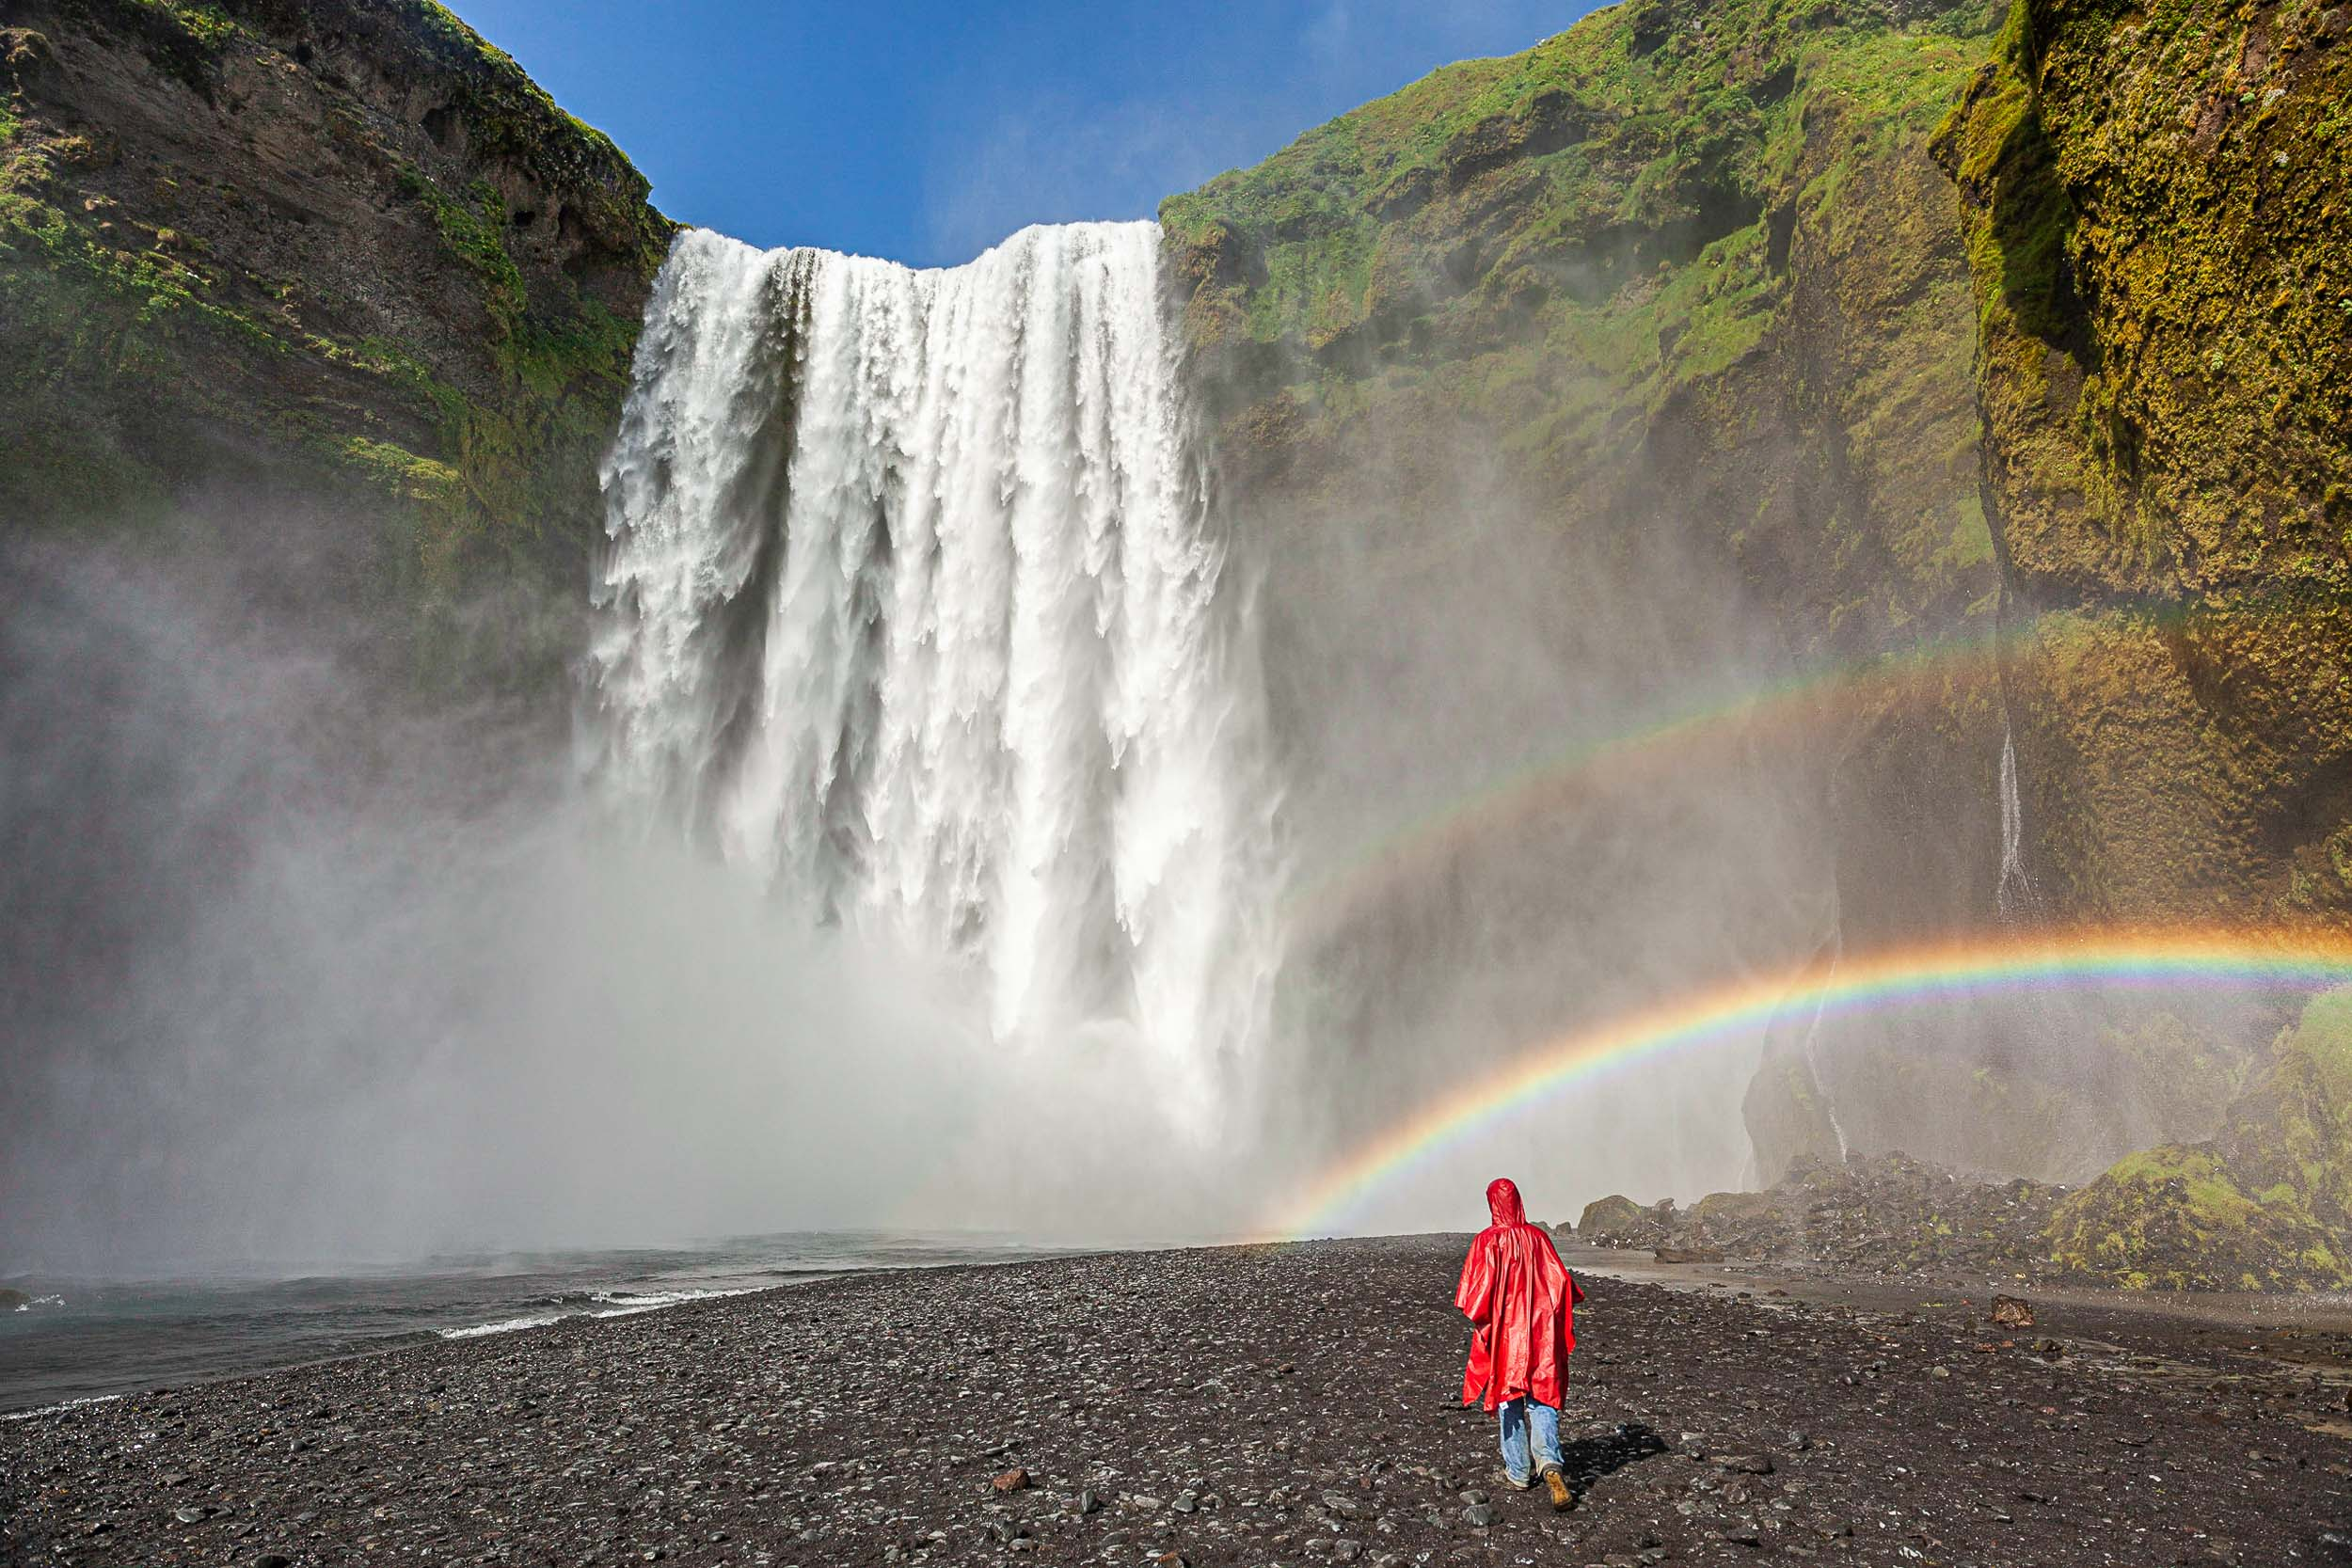 Skogarfoss waterfall with red raincoat under a rainbow